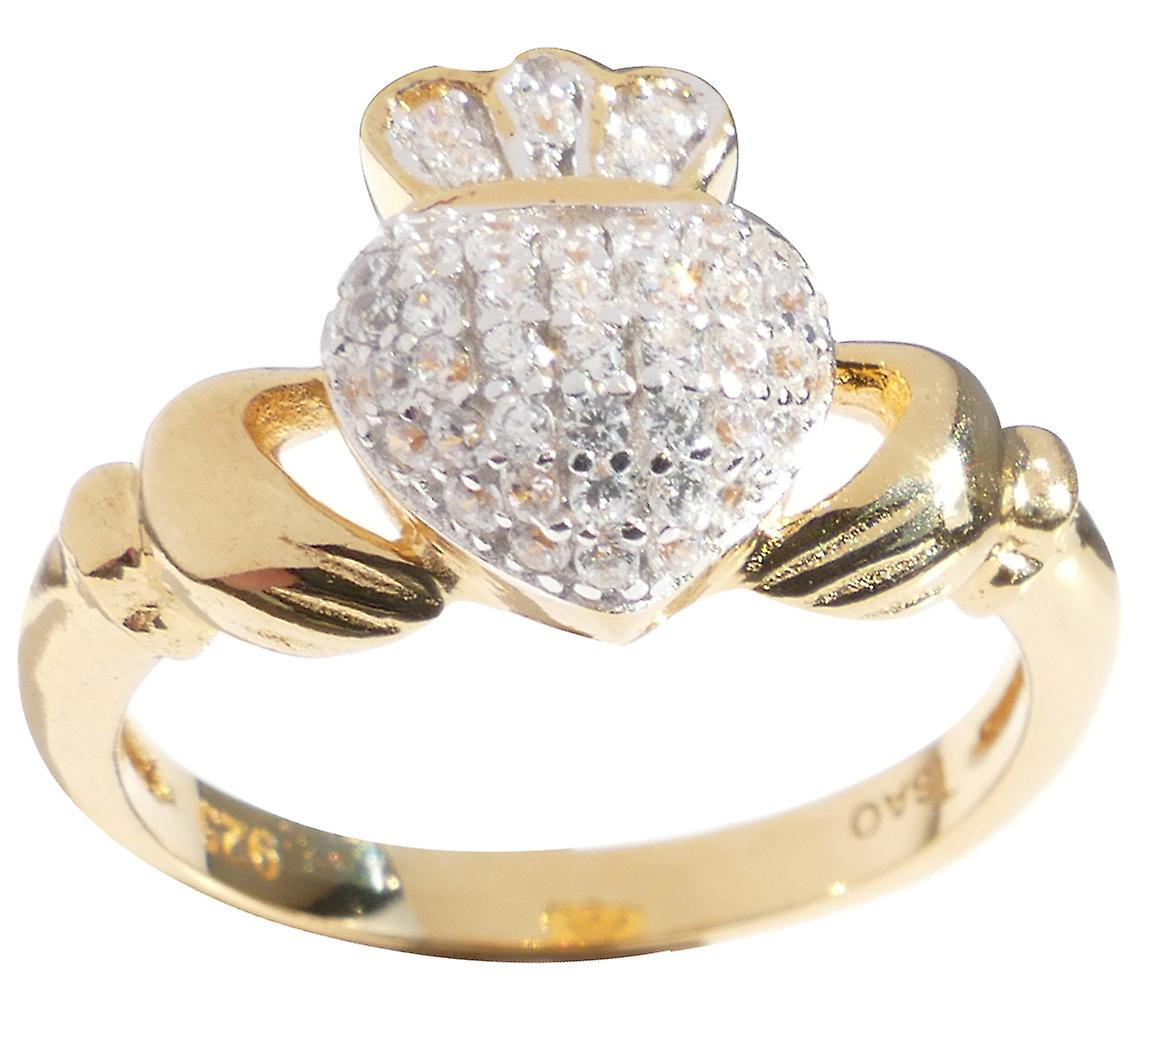 Ladies Traditional Claddagh Pave Setting Ring with a Sparkling Twist!